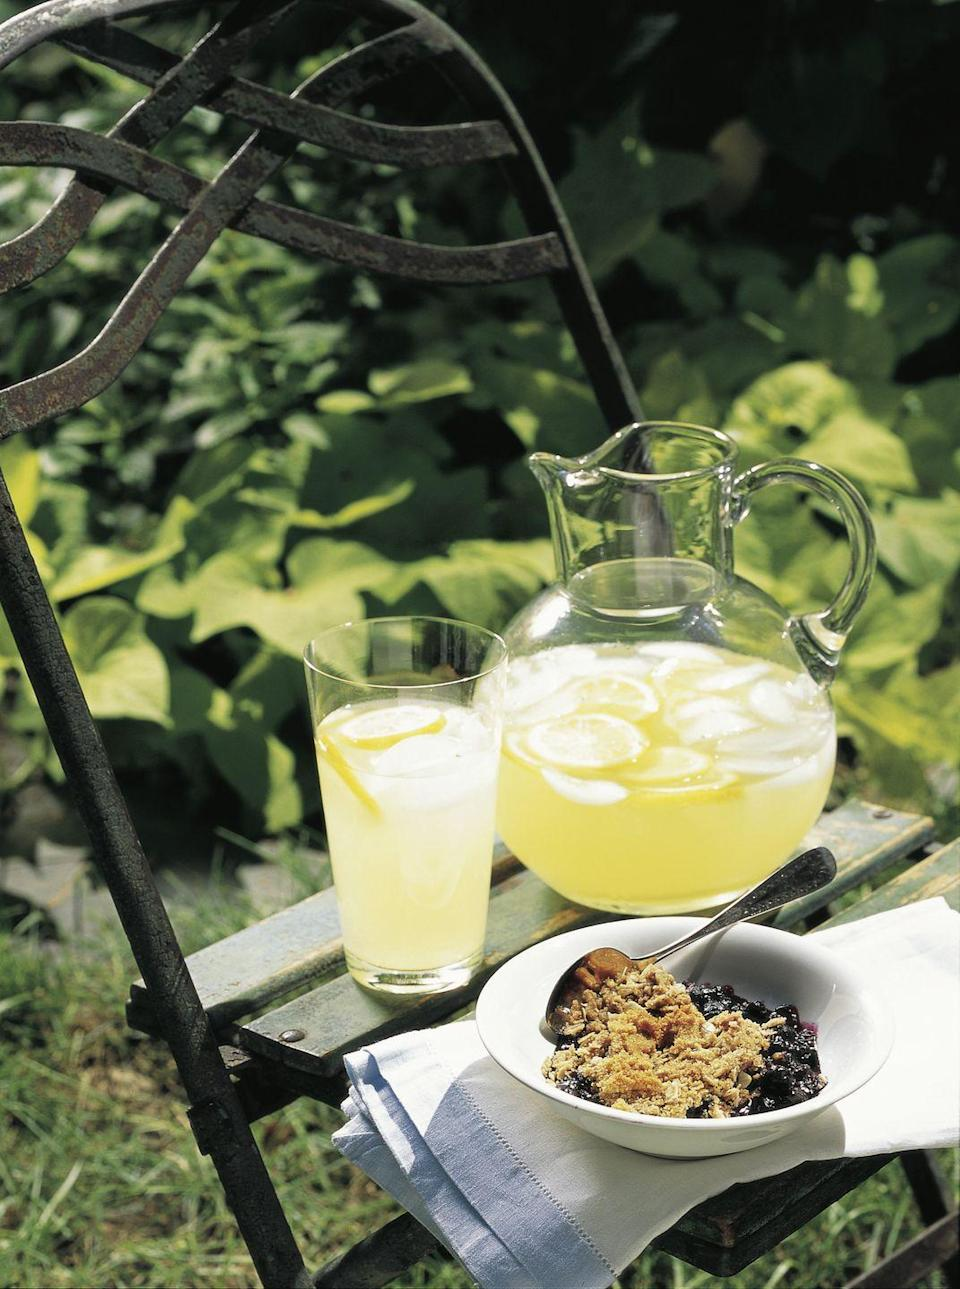 """<p>It's a fact of life: An ice-cold glass of tart lemonade will hit the spot <em>every single time</em>.</p><p><em><a href=""""https://www.goodhousekeeping.com/holidays/a16857/drink-fourth-0705/"""" rel=""""nofollow noopener"""" target=""""_blank"""" data-ylk=""""slk:Get the recipe for Homemade Lemonade »"""" class=""""link rapid-noclick-resp"""">Get the recipe for Homemade Lemonade »</a></em> </p>"""